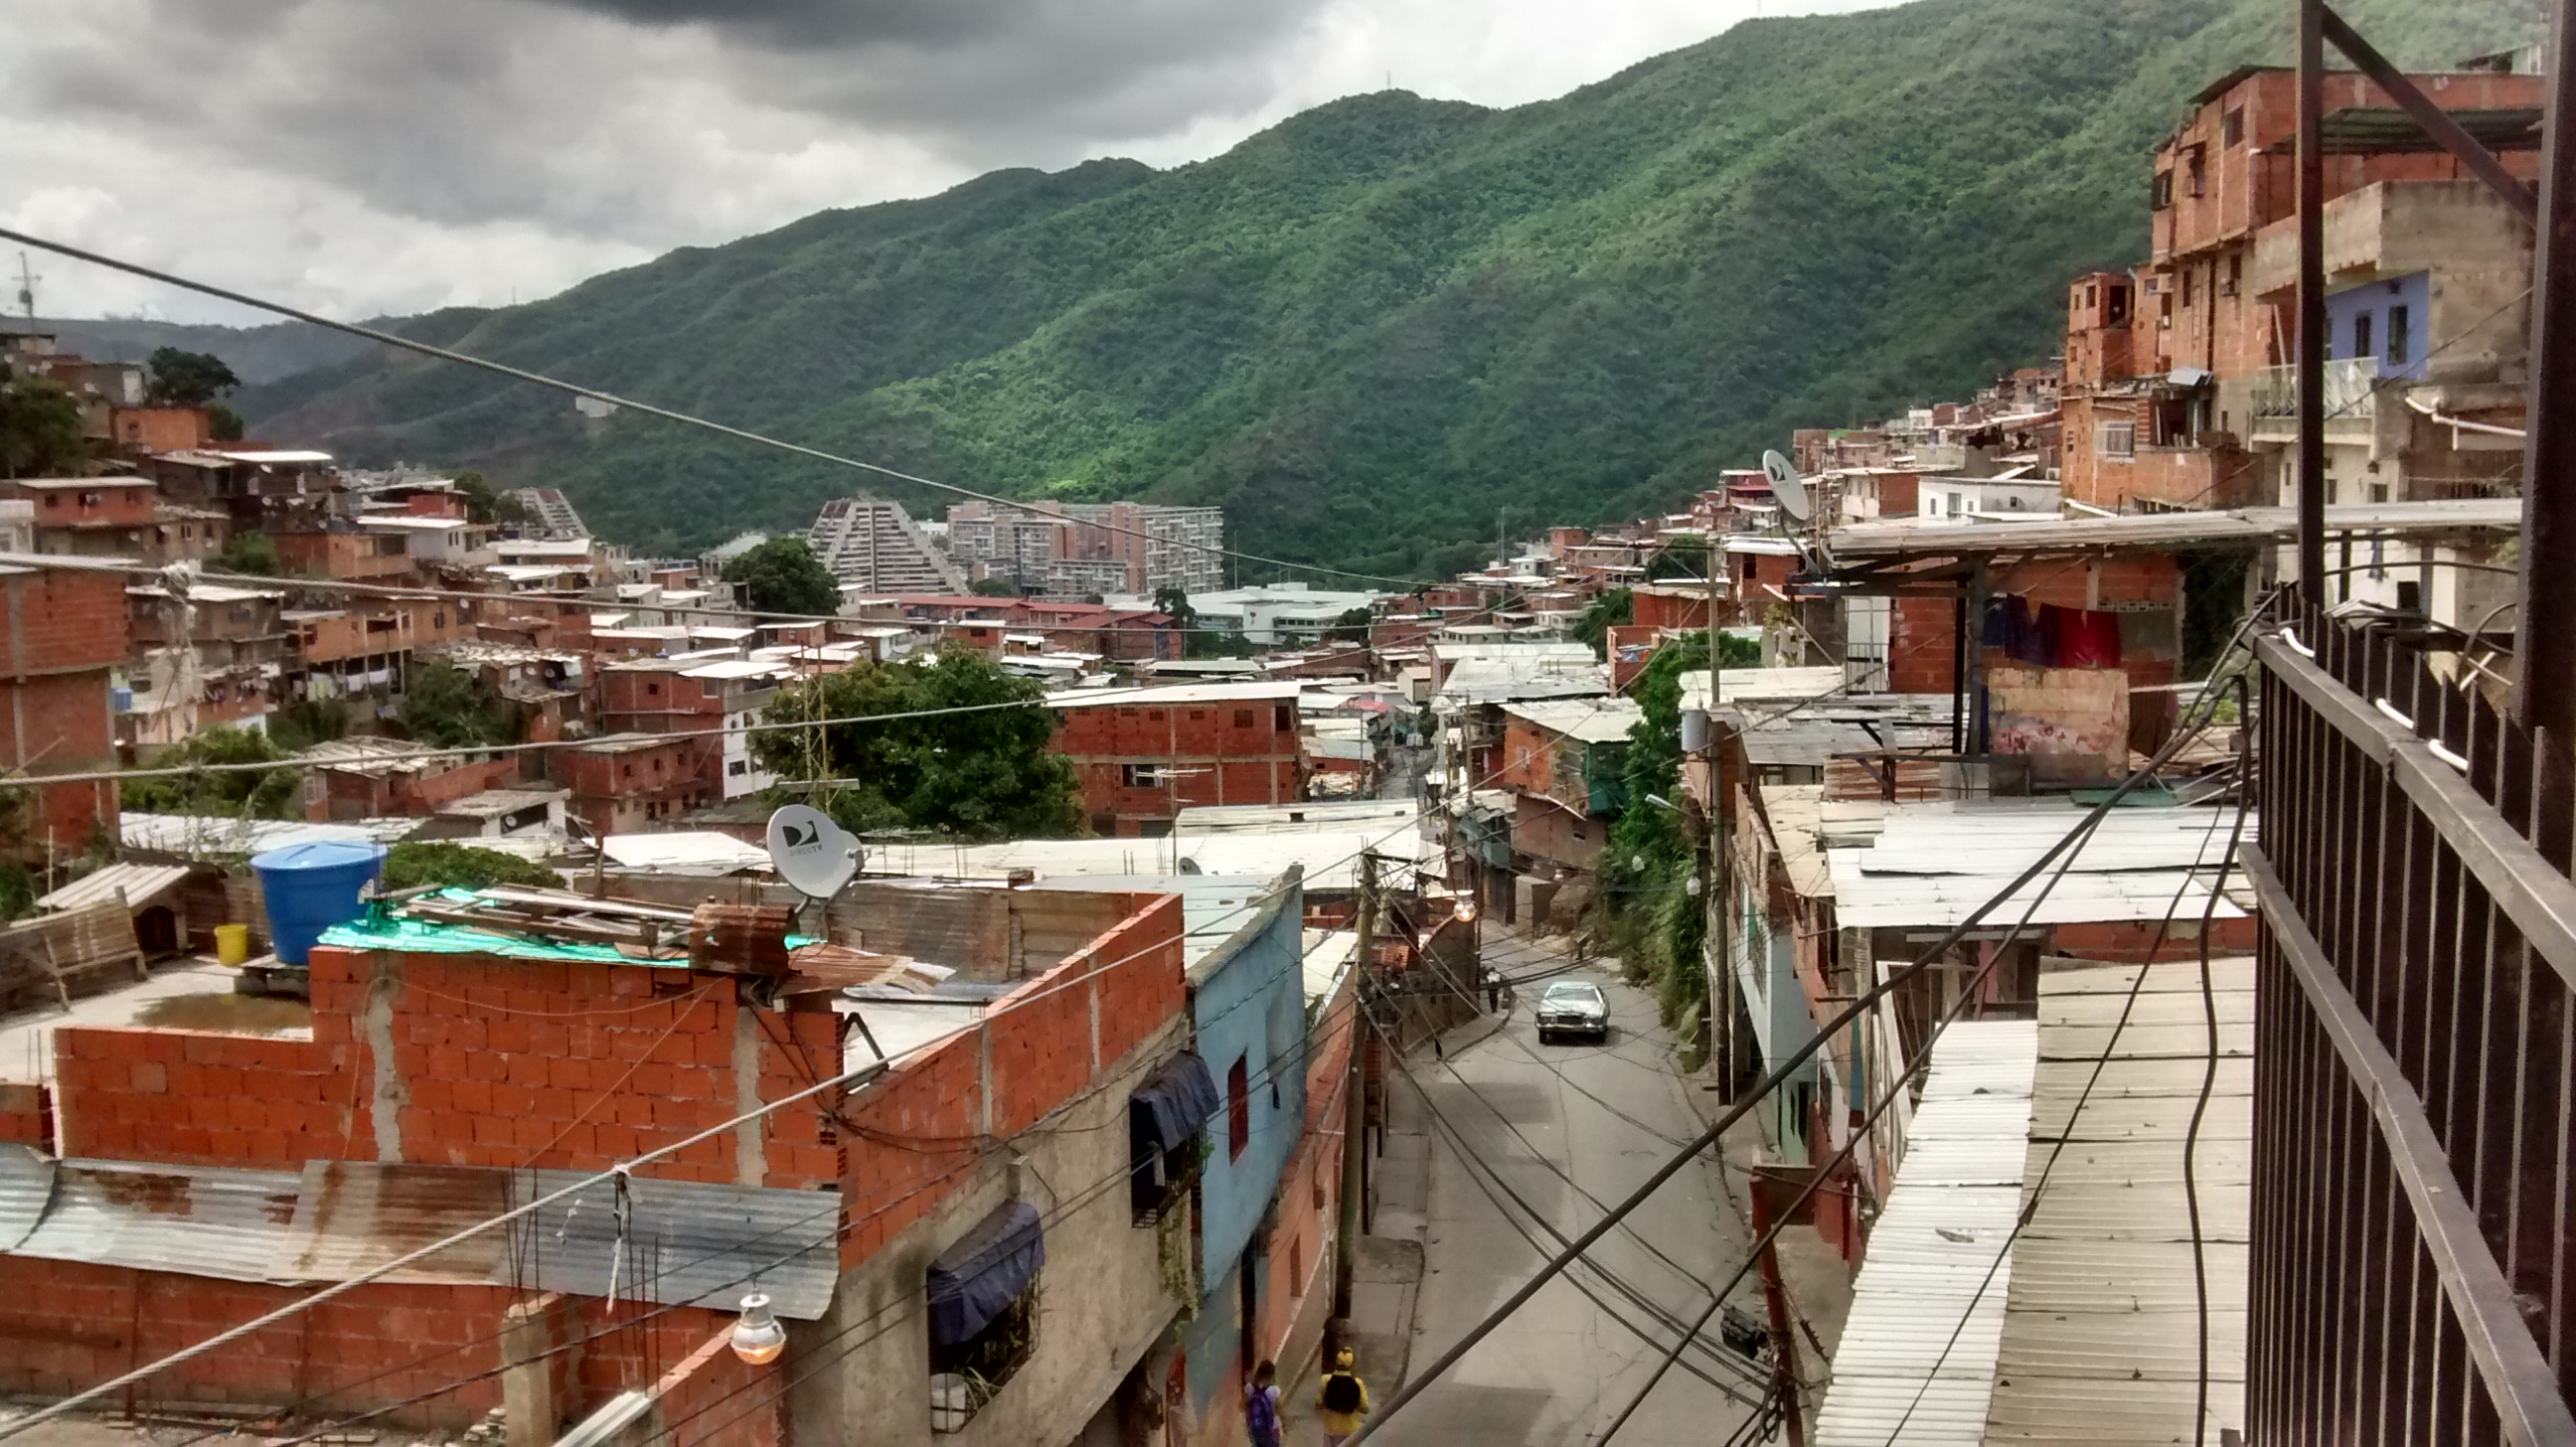 A view from the rooftop of my lodgings in the Venezuelan capital Caracas, in the Carapita/Antimano area of the city.